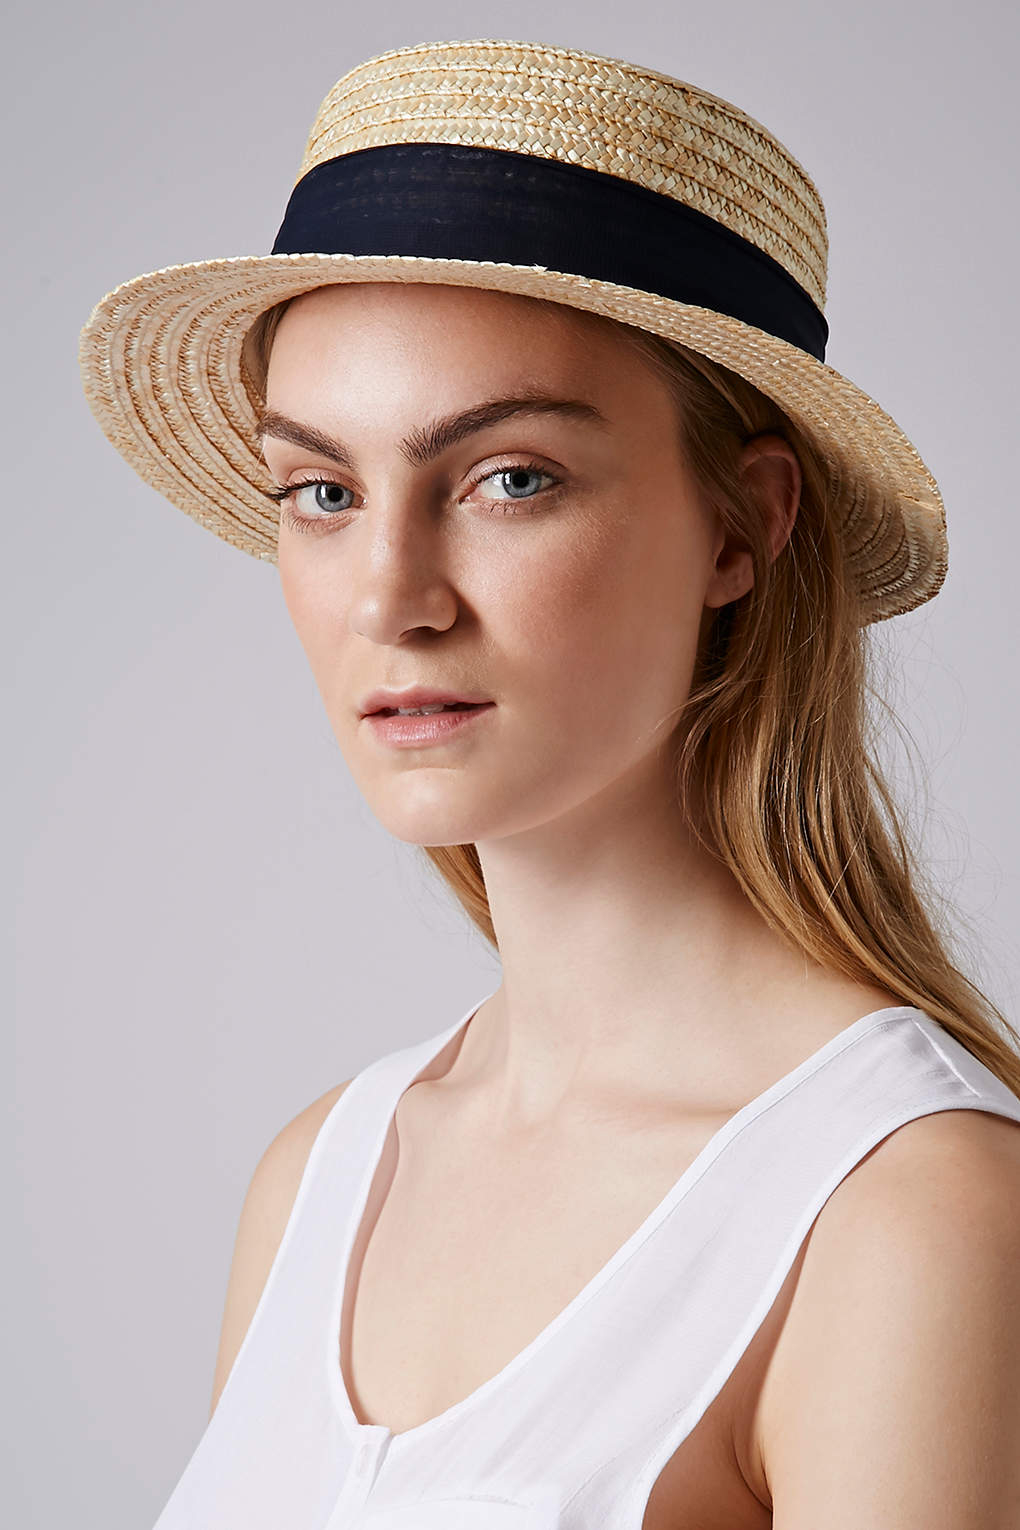 Lyst - TOPSHOP Narrow Brim Boater Hat in Natural 7d5079be4d9